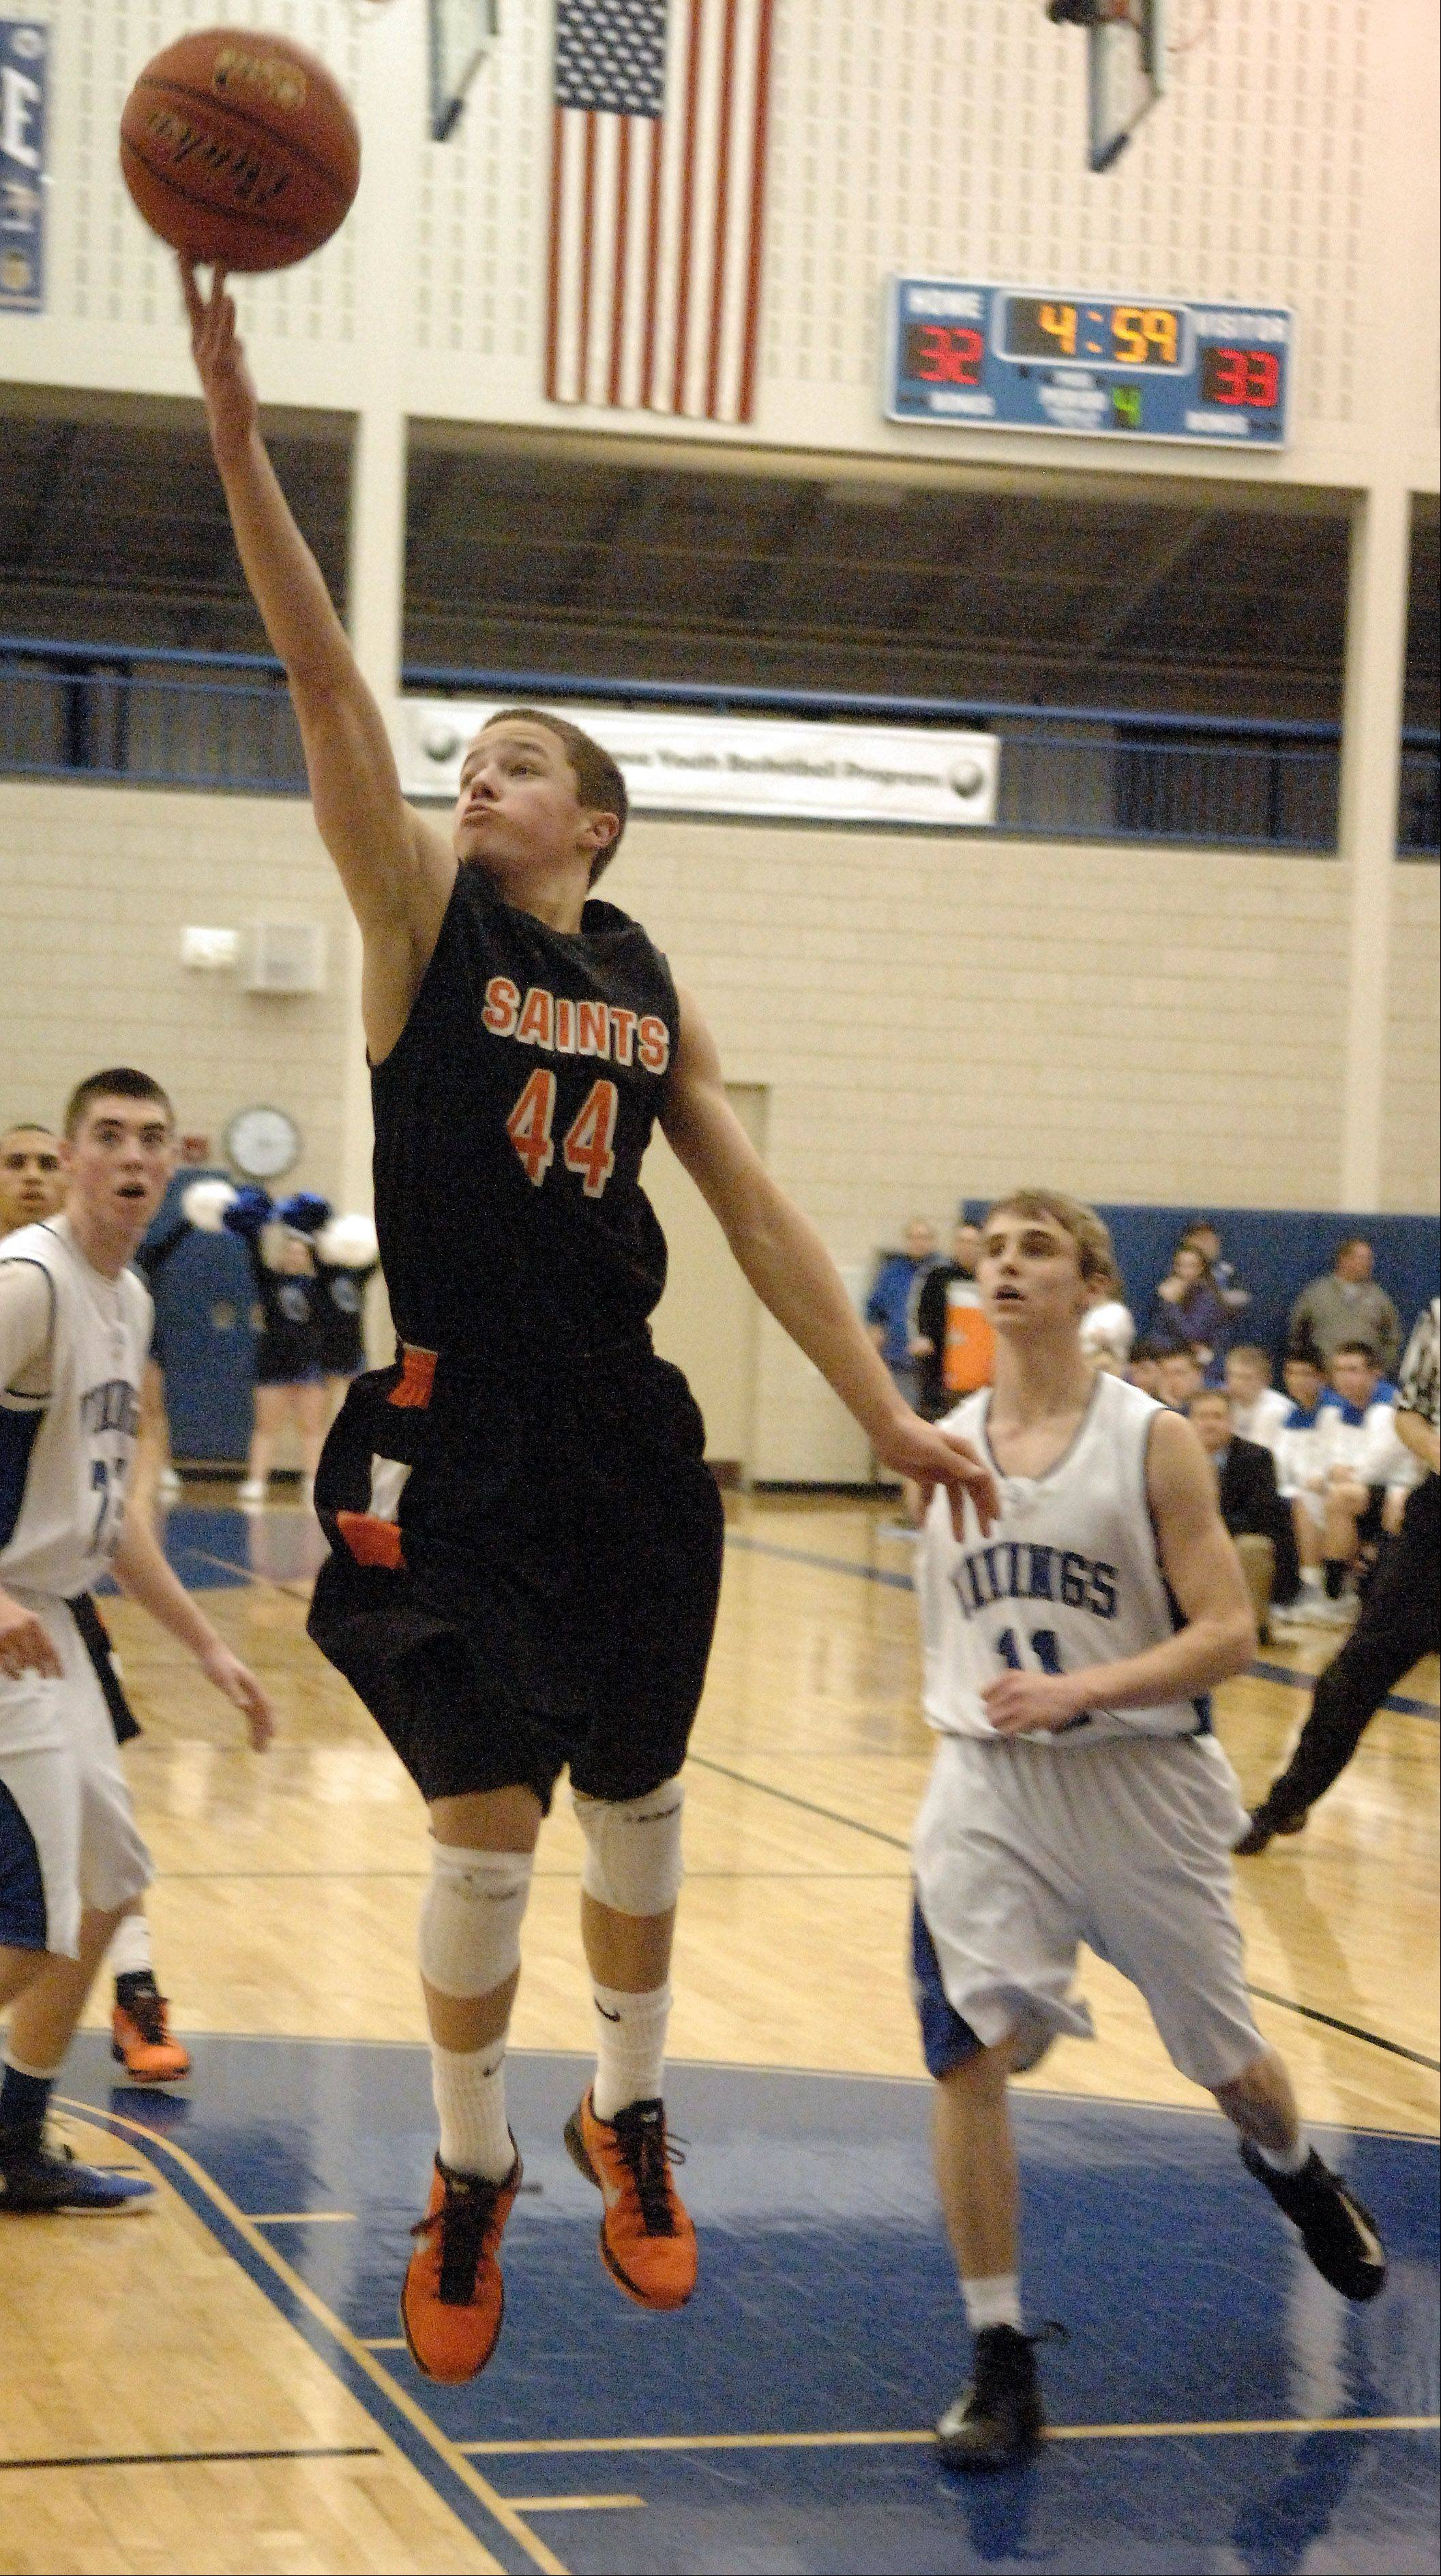 St. Charles East's Cole Gentry extends as he drives to the basket and scores during Friday's game in Geneva.